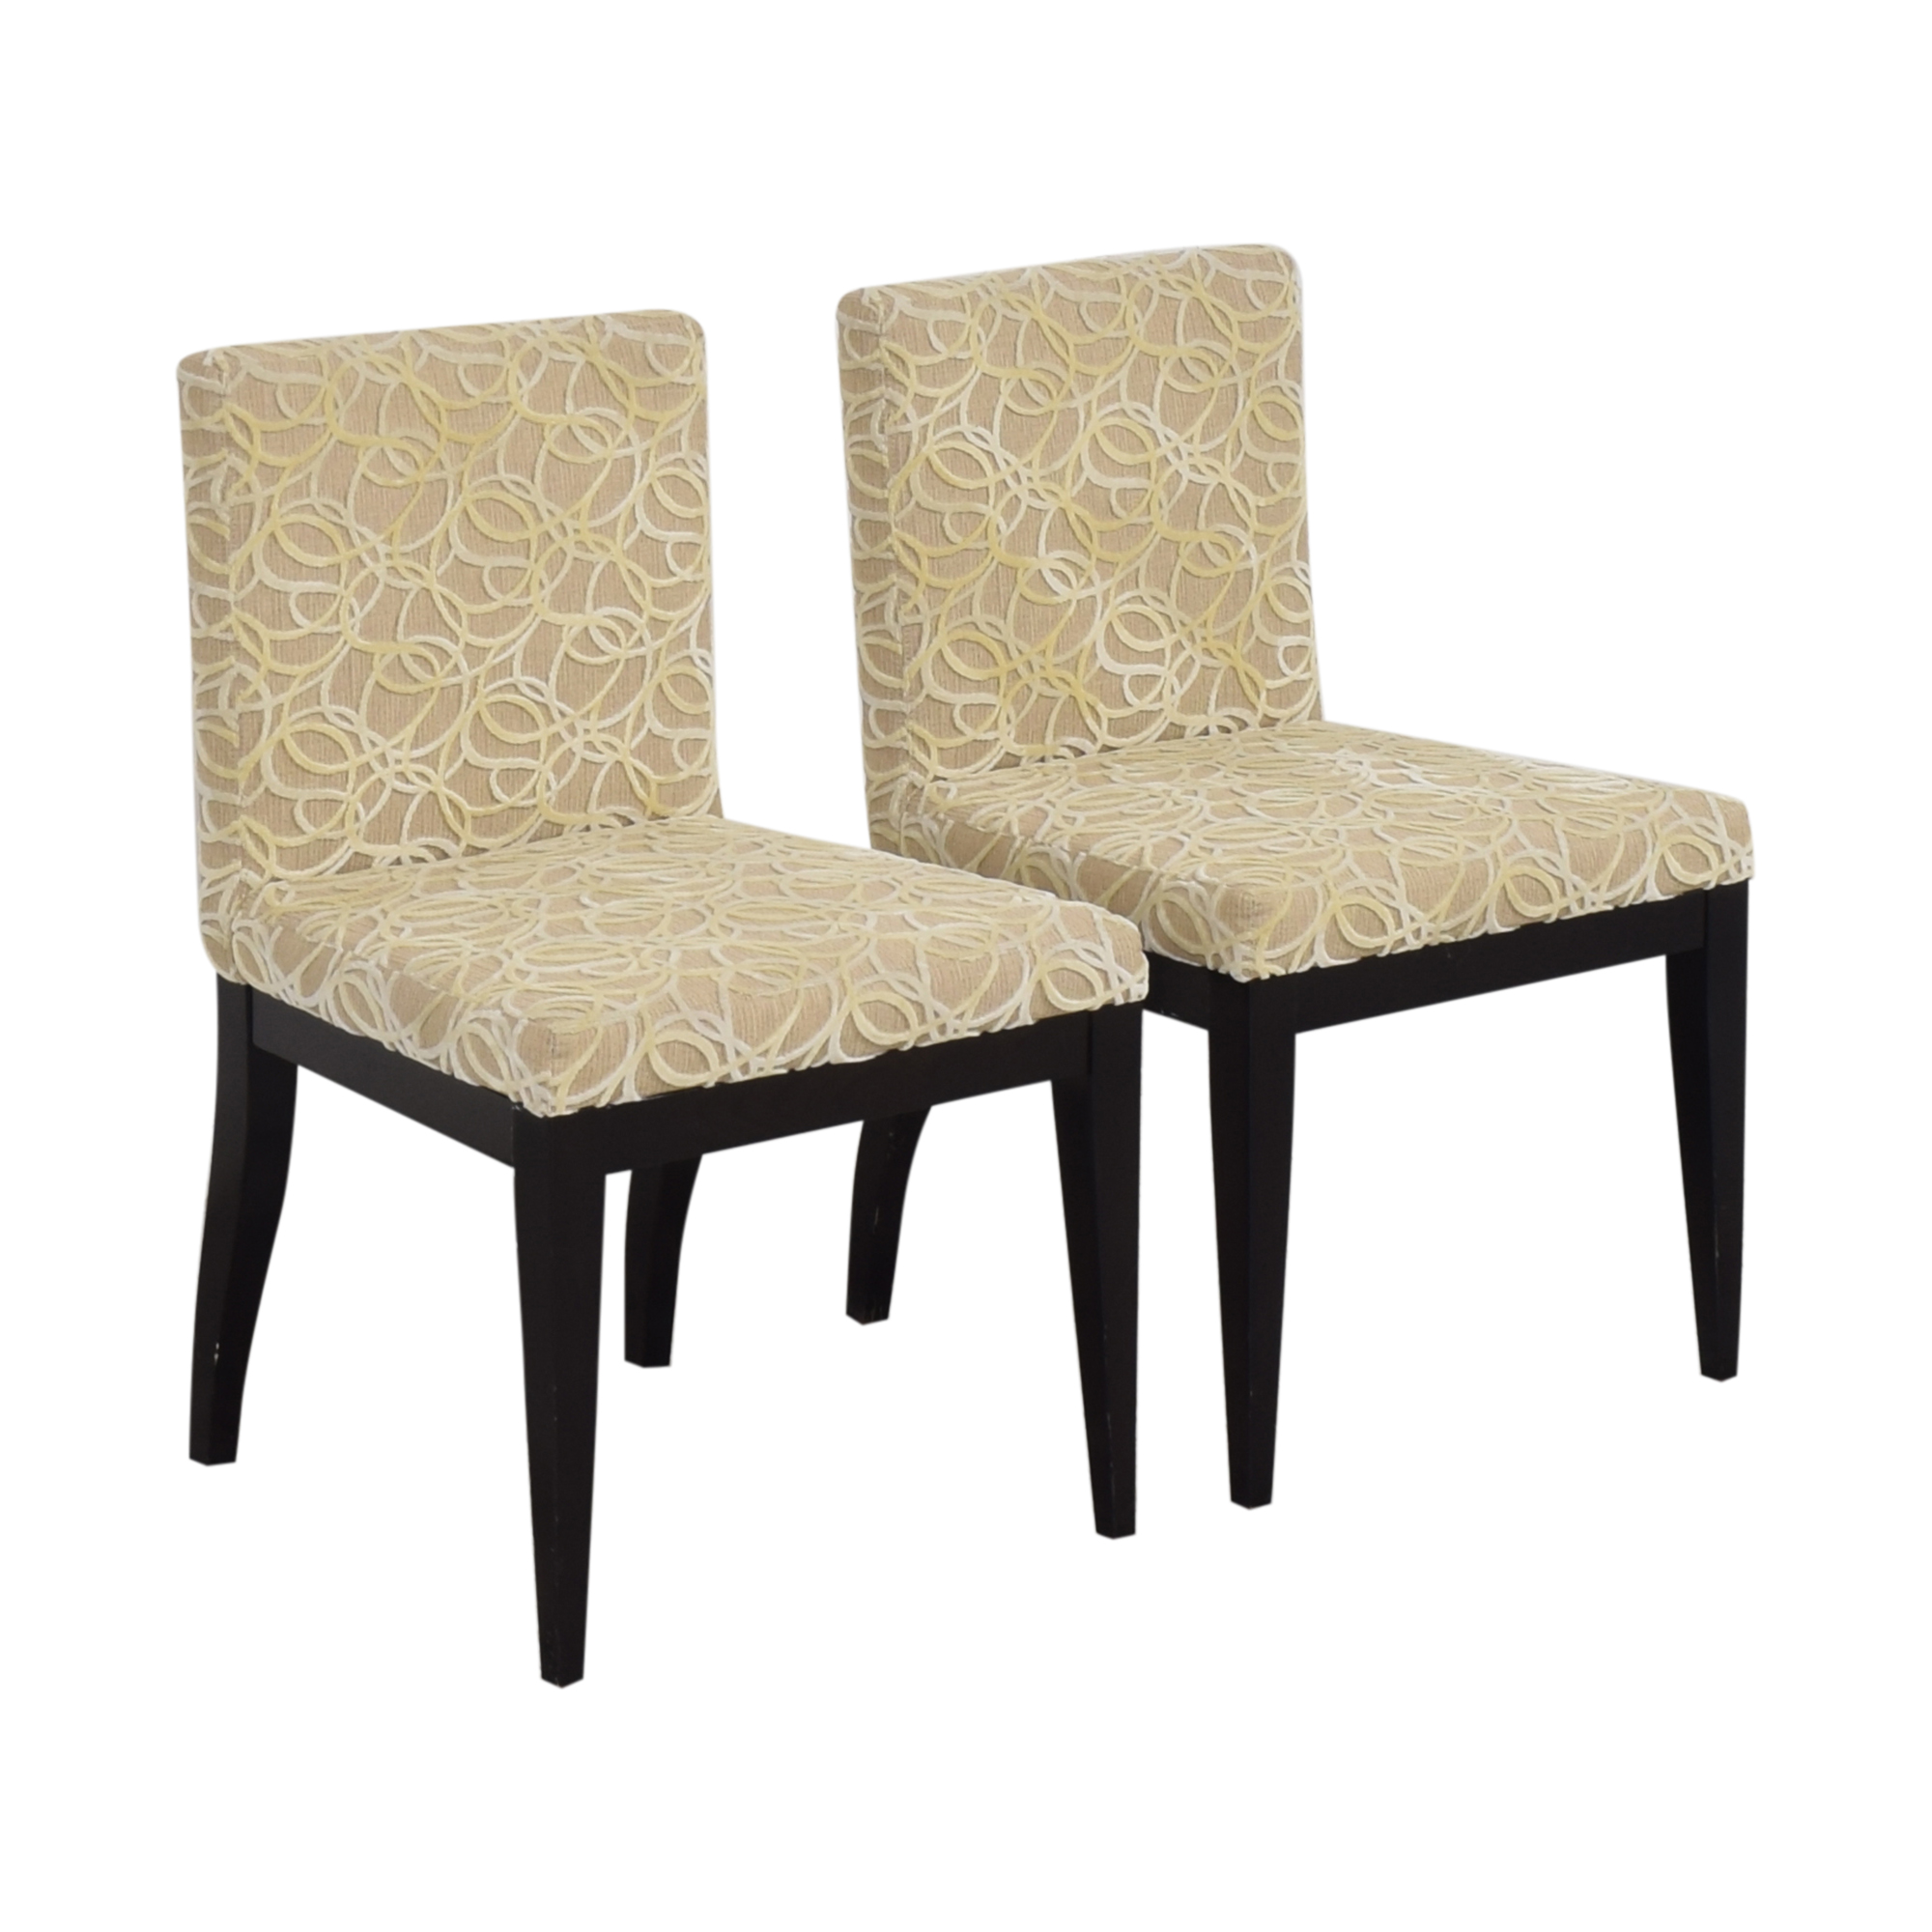 shop Bolier & Company Bolier & Company Upholstered Dining Chairs online